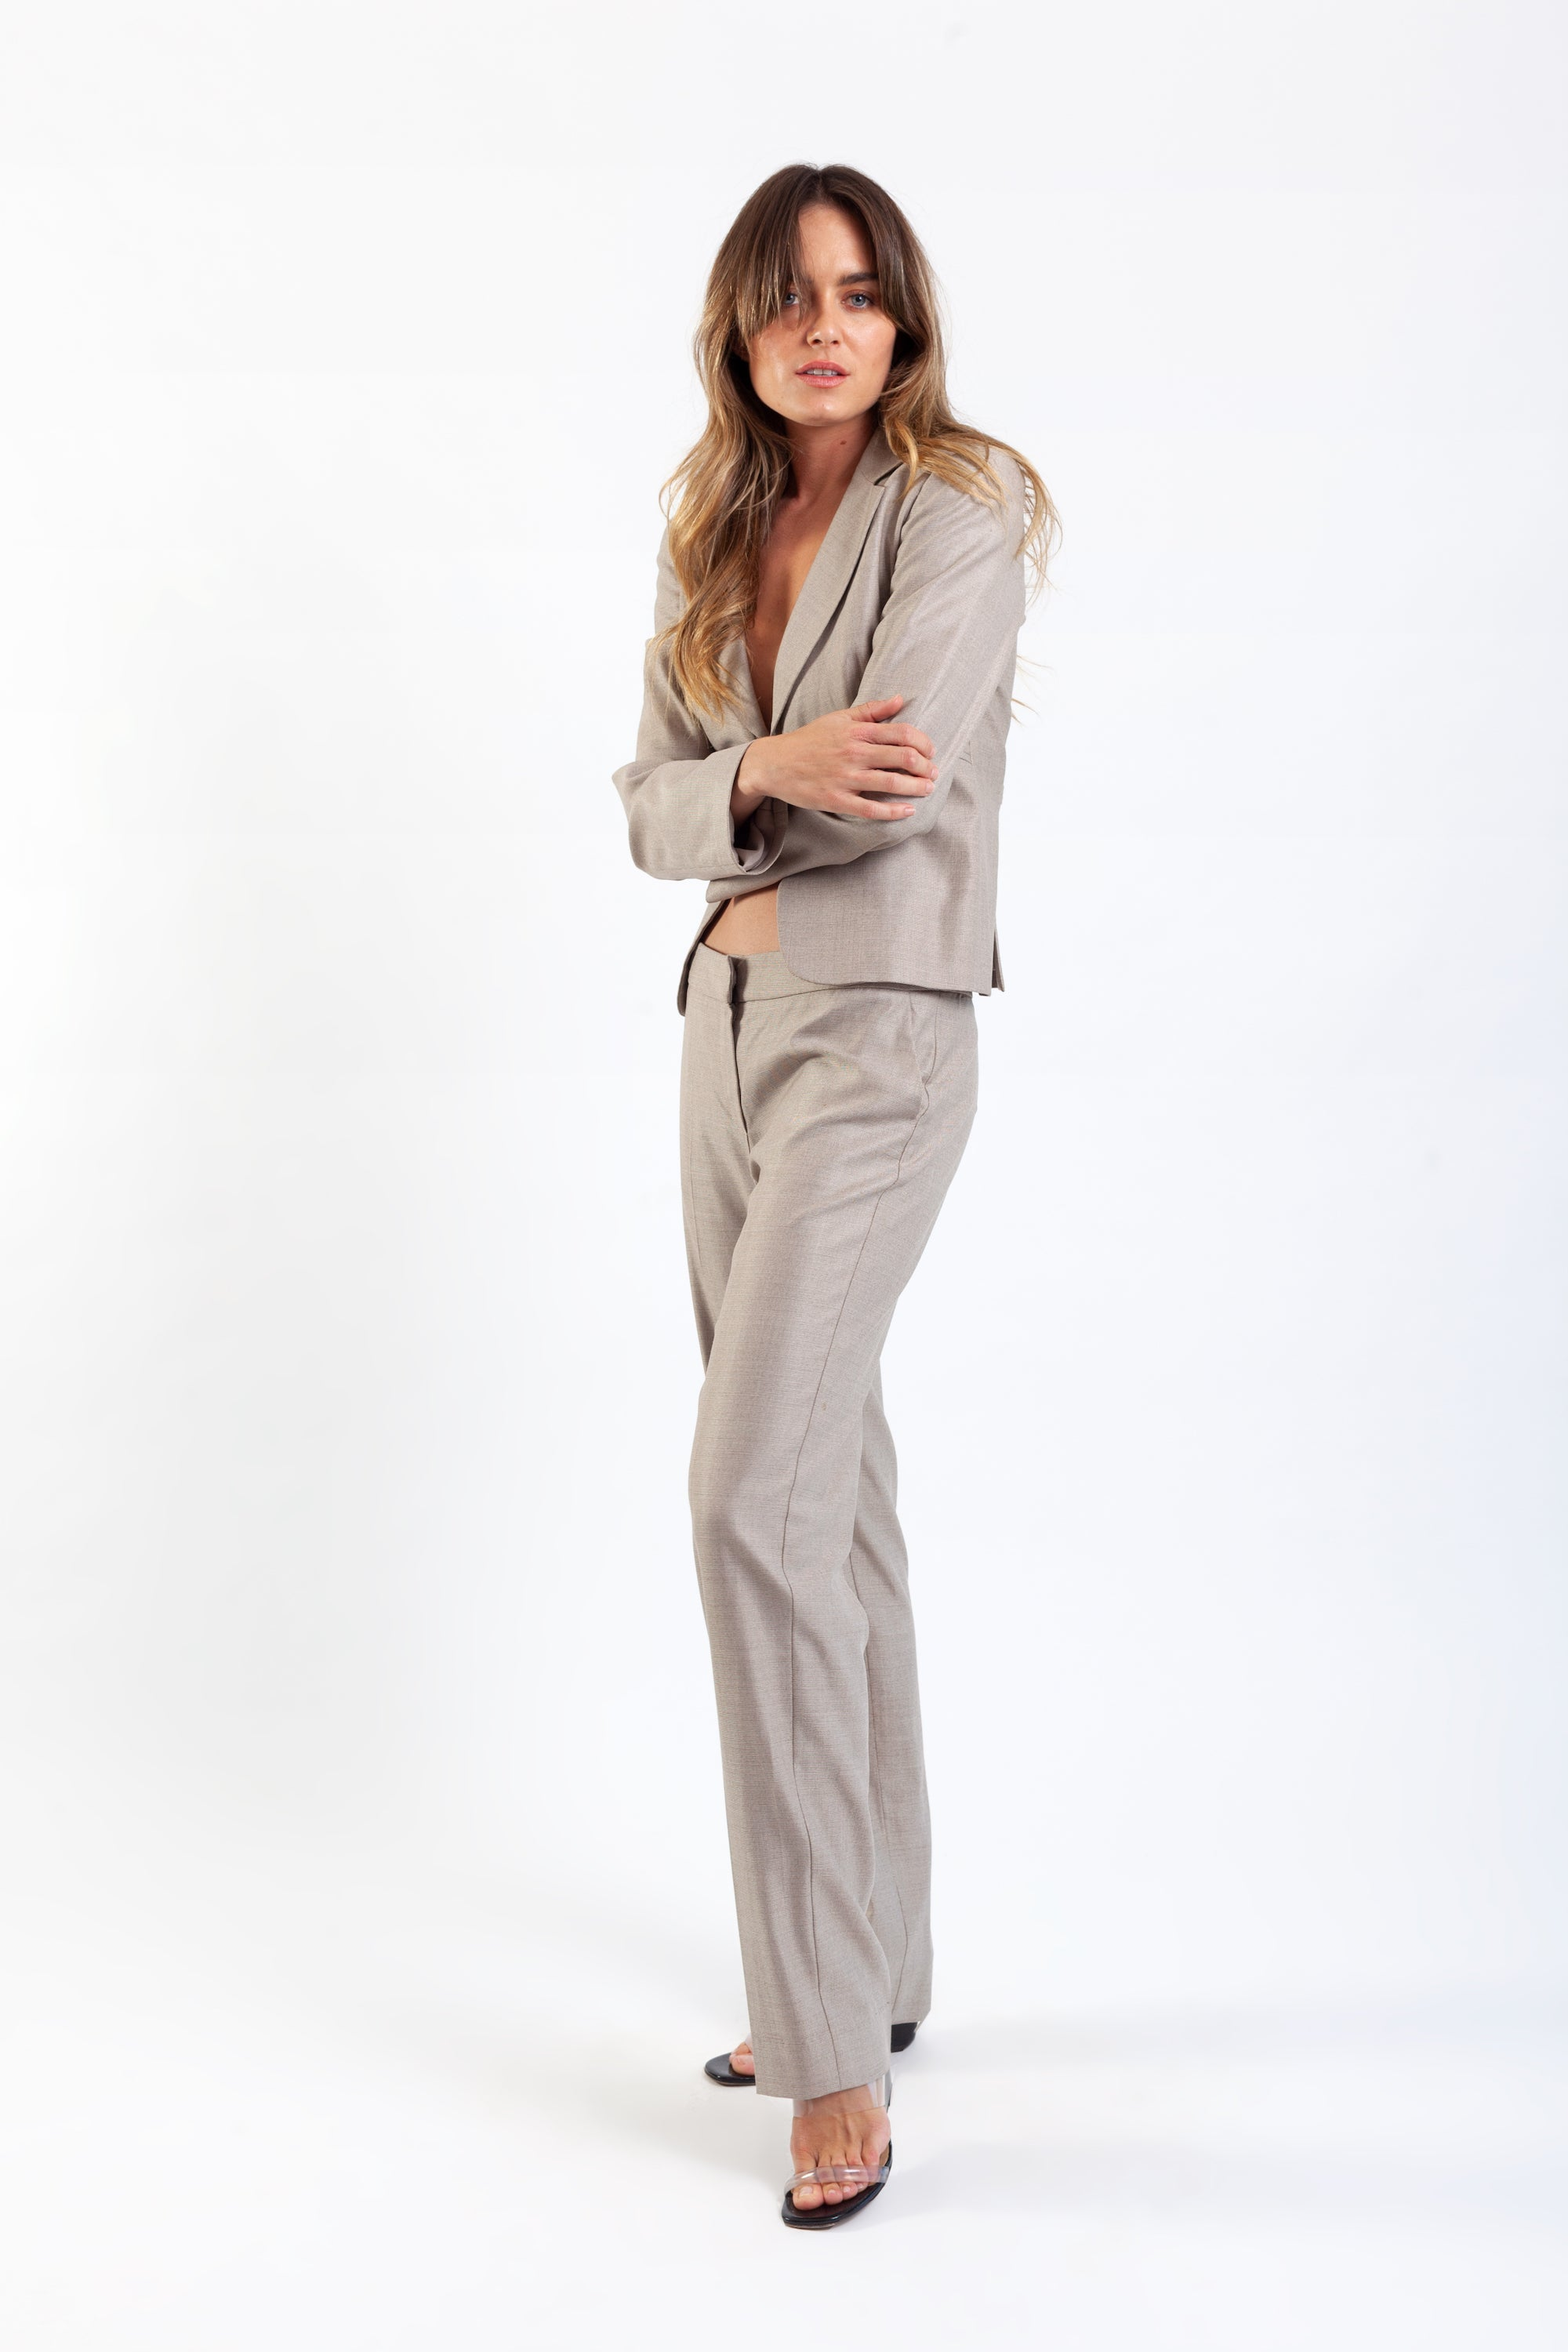 Armani <br> 80's/90's wool/silk tailored pant suit